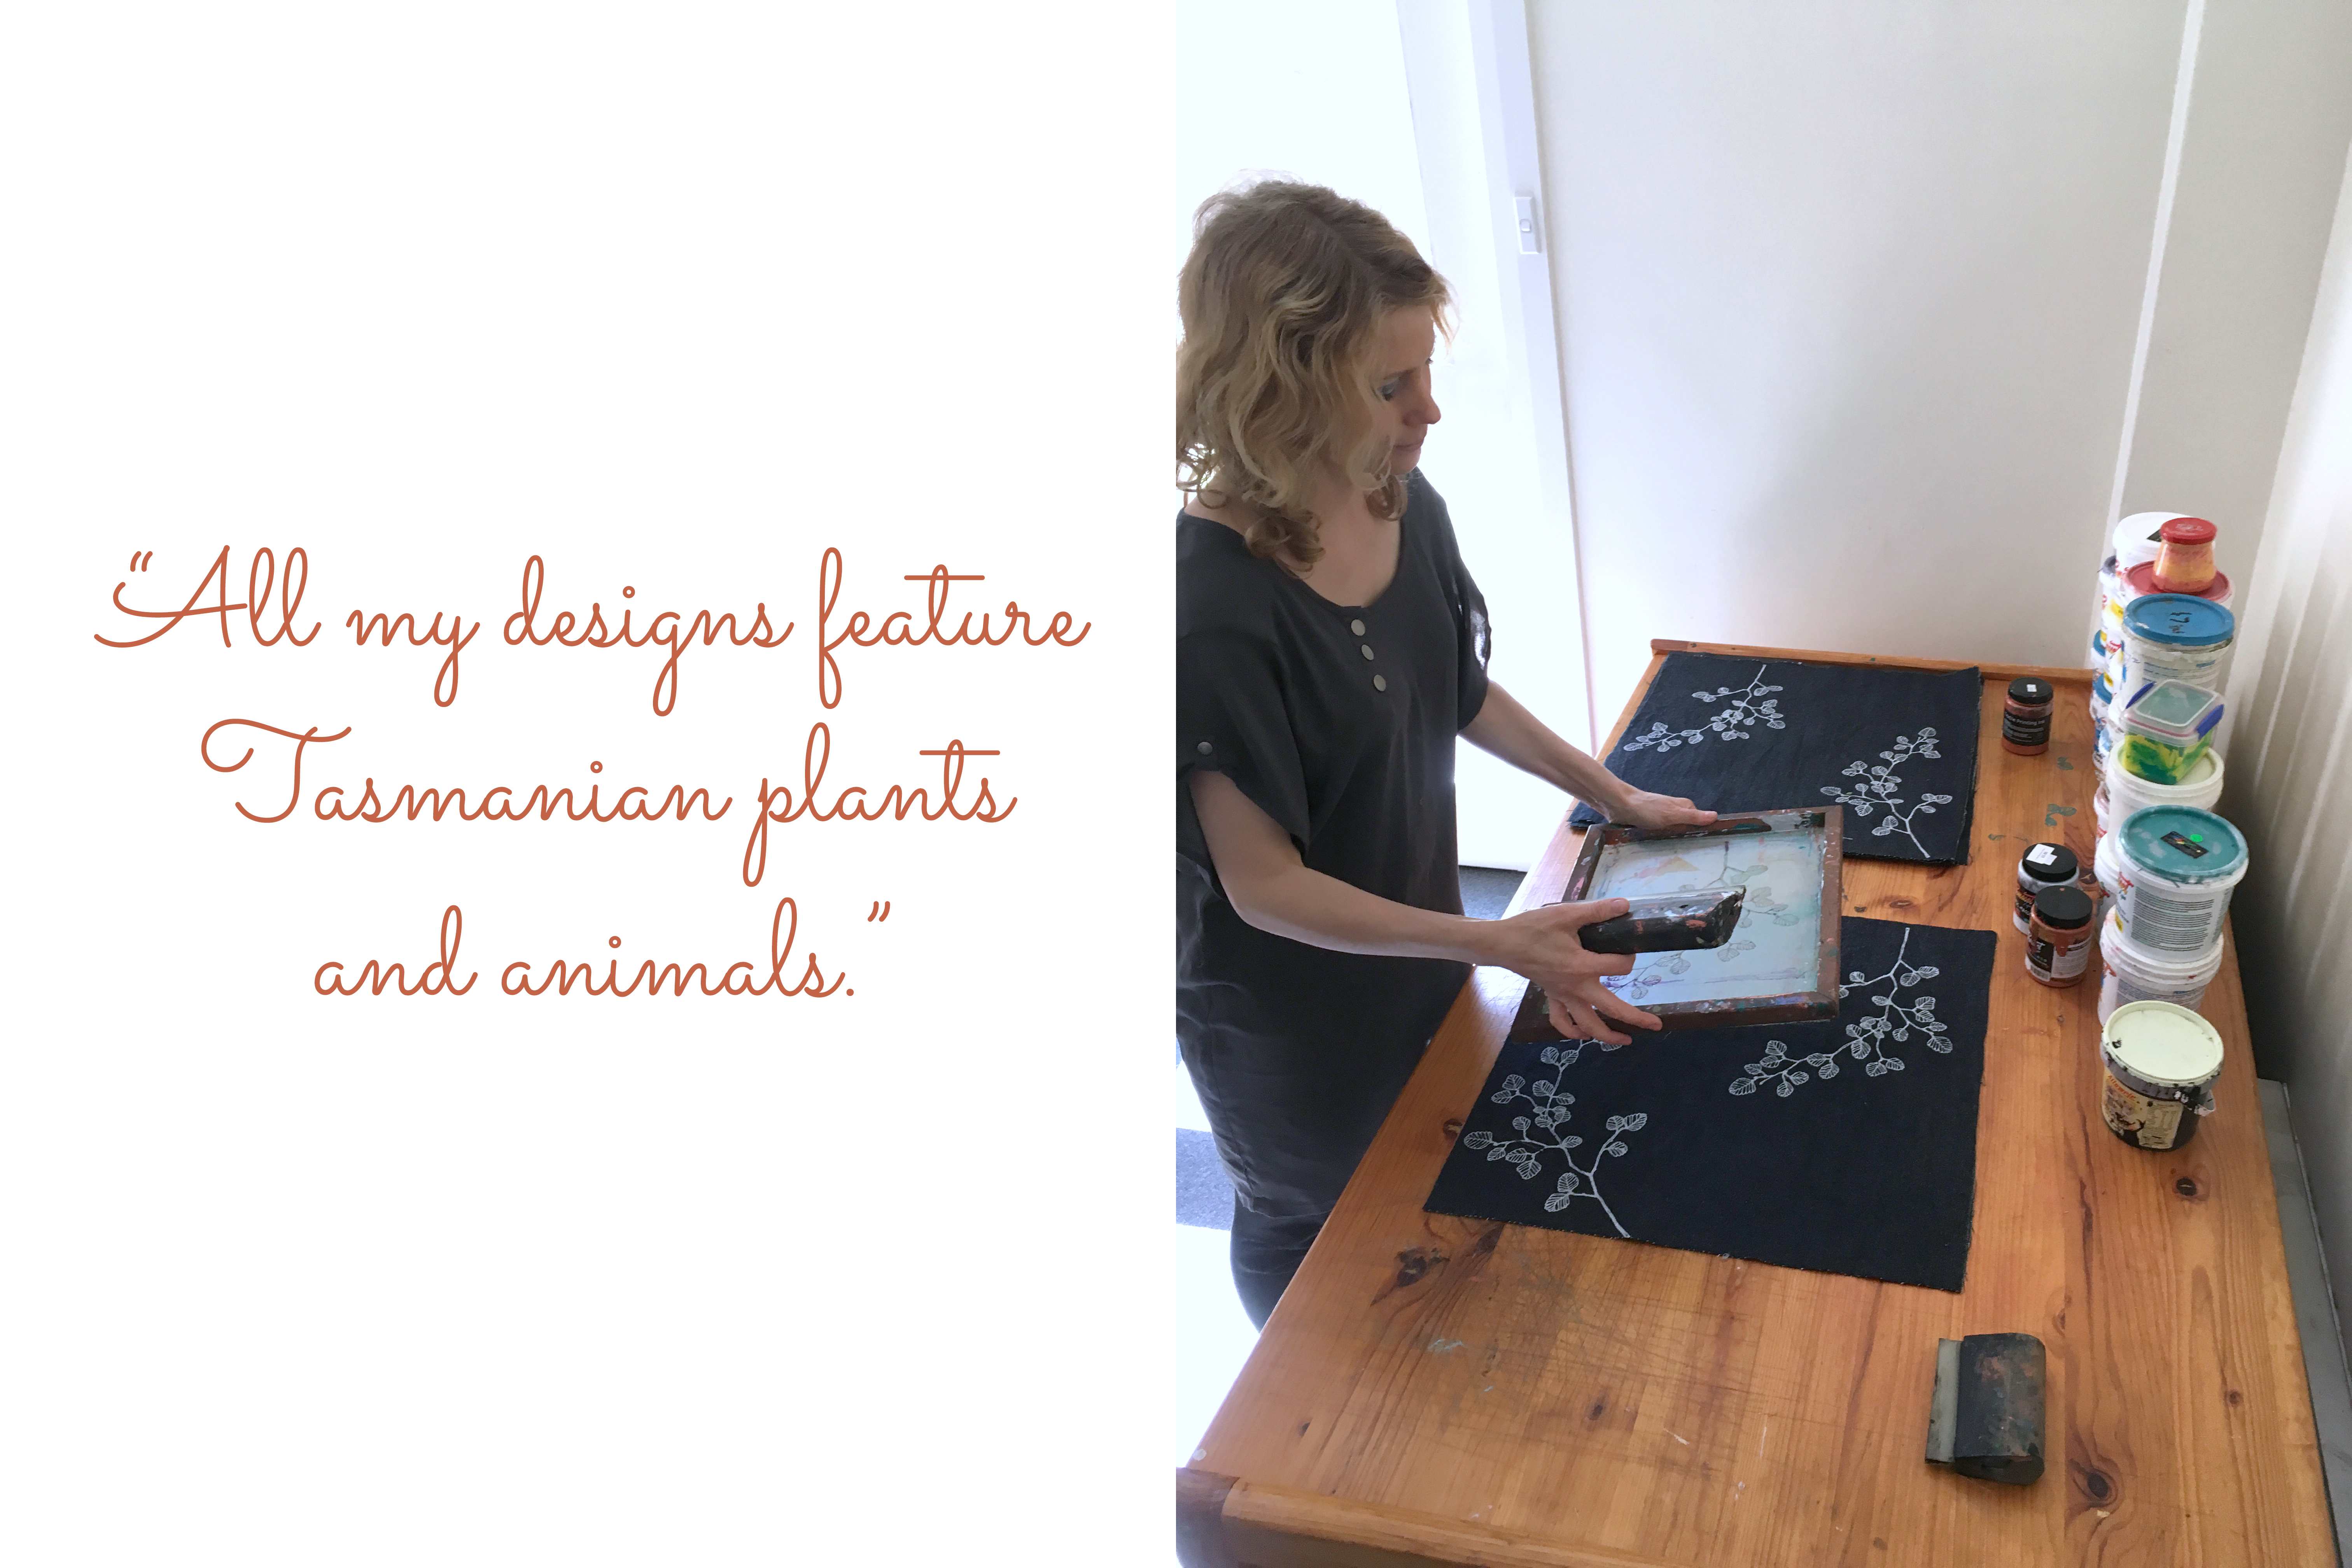 Stalley at work: 'All my designs feature Tasmanian plants and animals.'